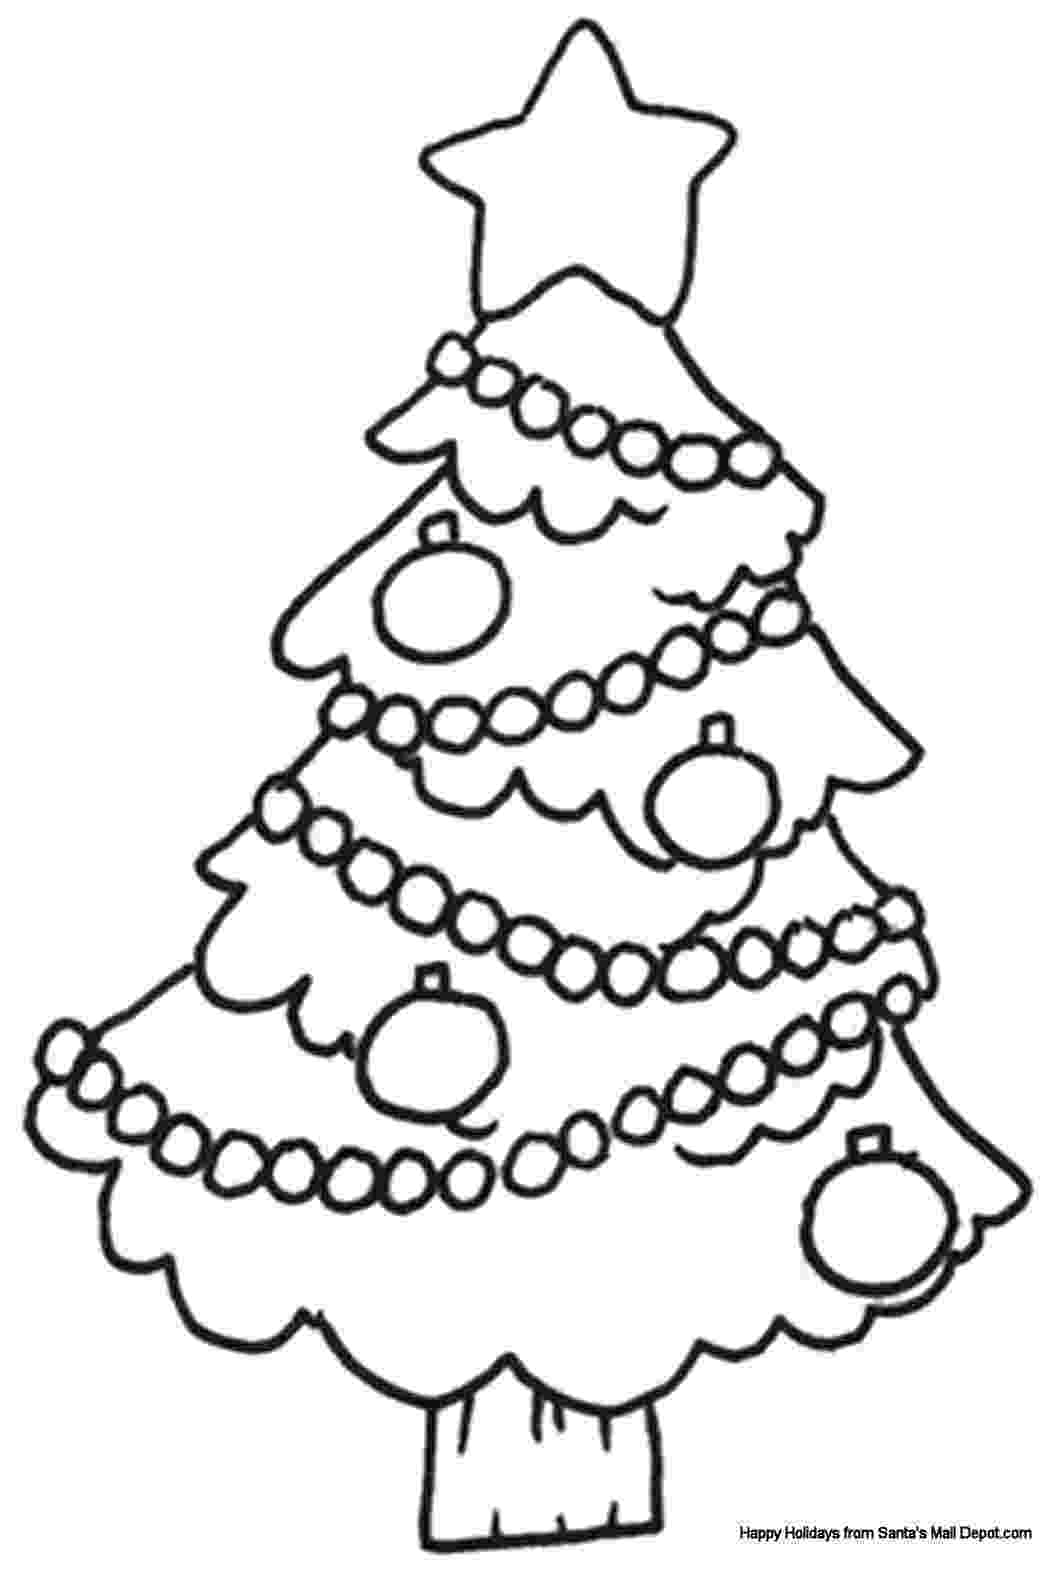 chirstmas coloring pages ongarainenglish christmas coloring sheets pages coloring chirstmas